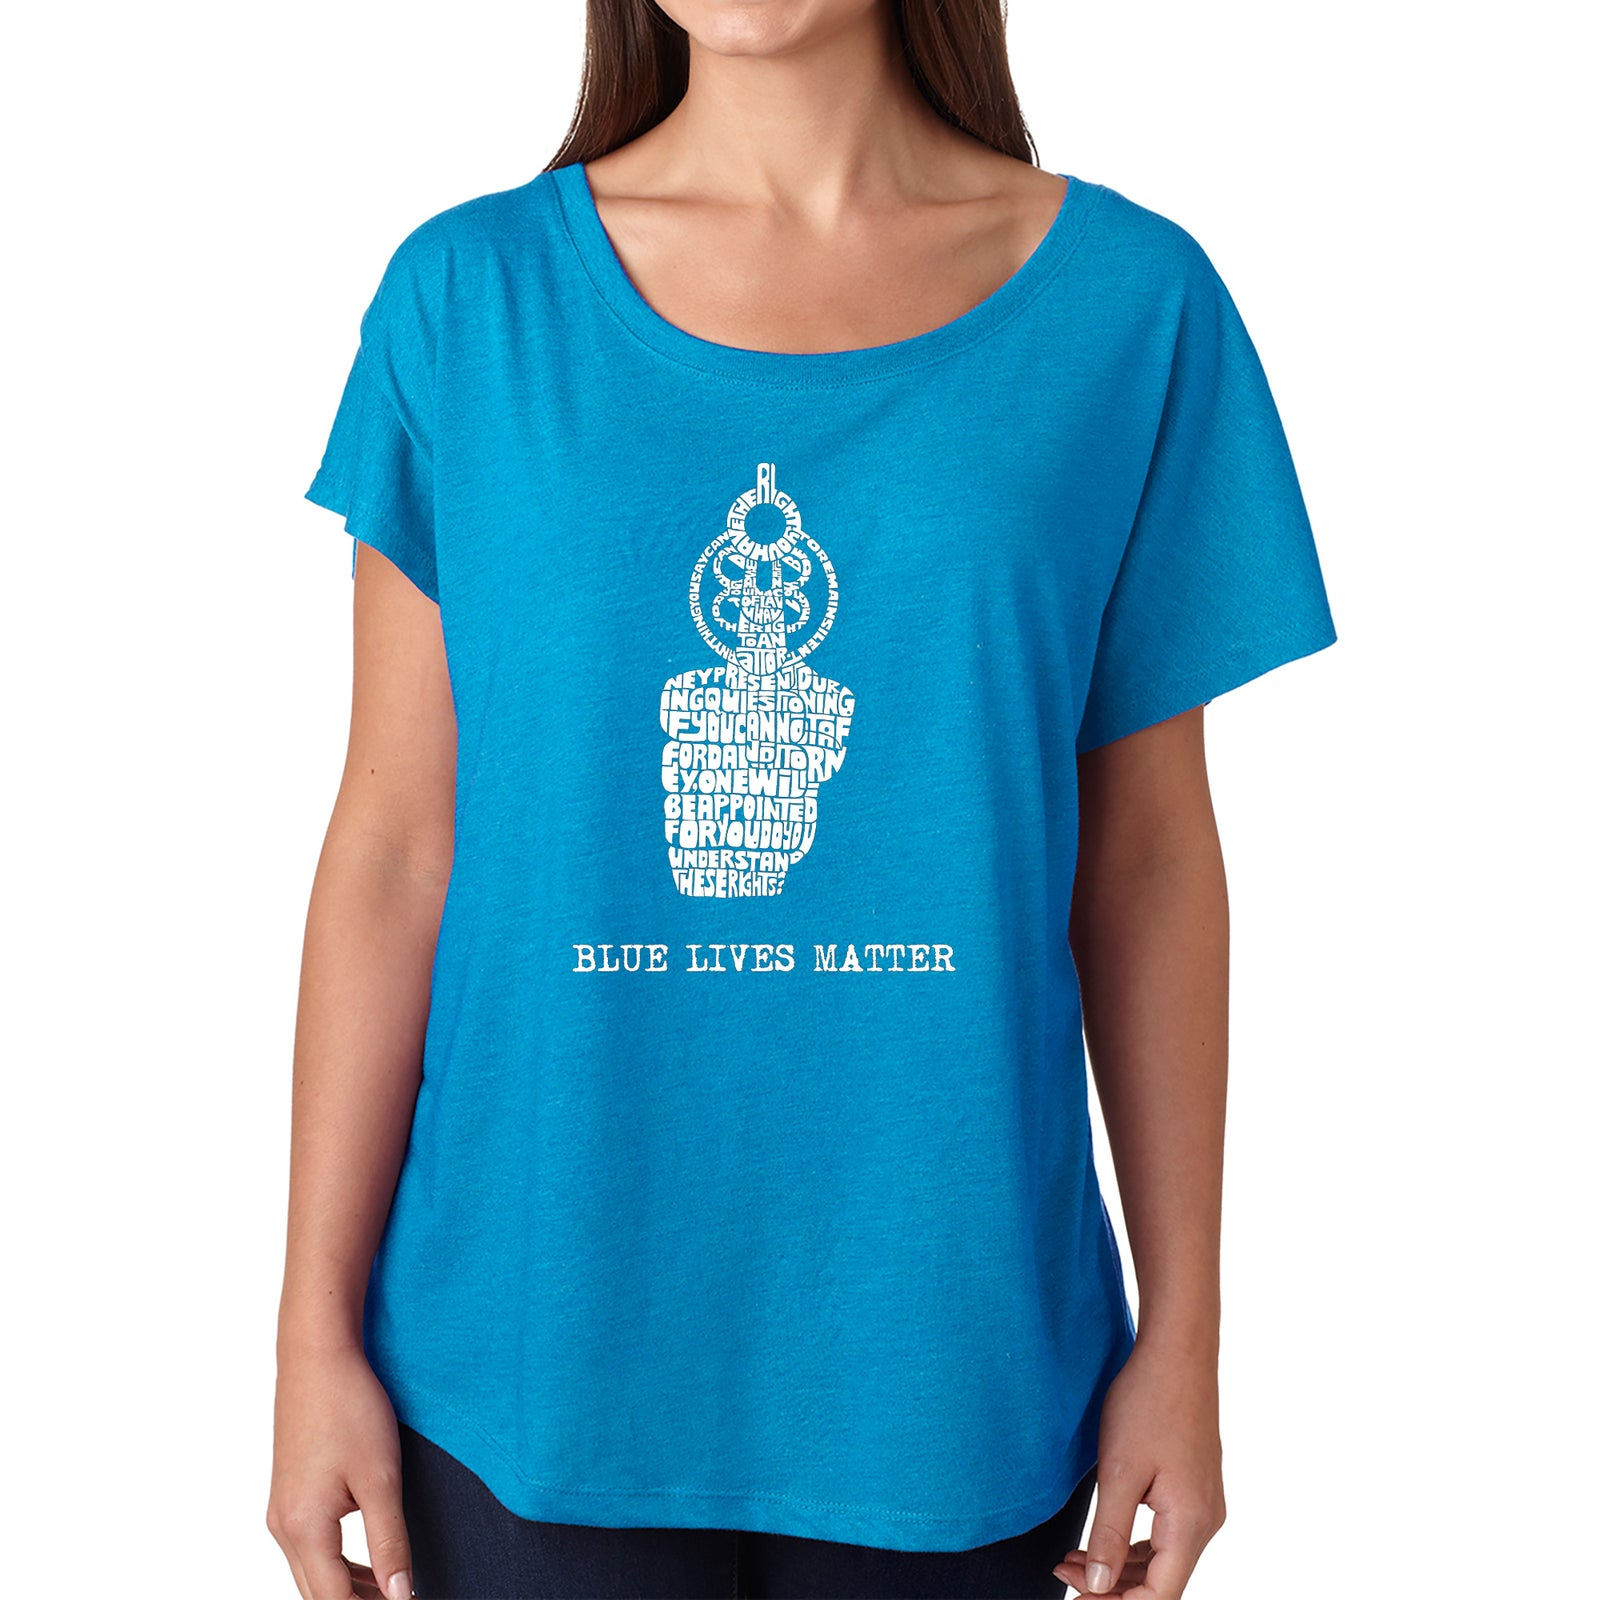 Women's Loose Fit Dolman Cut Word Art Shirt - Blue Lives Matter